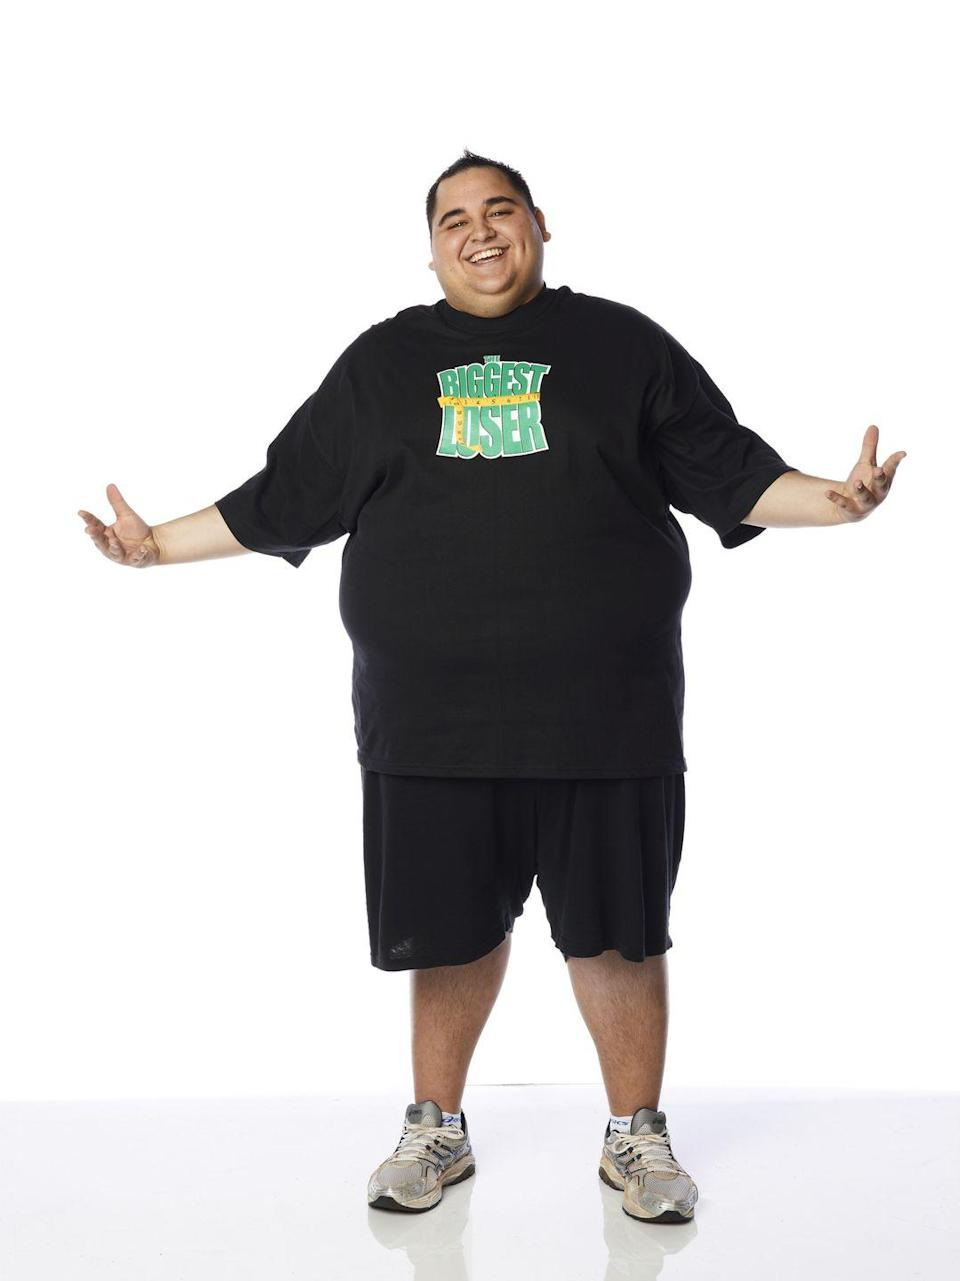 <p>Jeremy was just 22 when he joined the show. He weighed 389 pounds at the start and had a BMI of 59.1.</p>